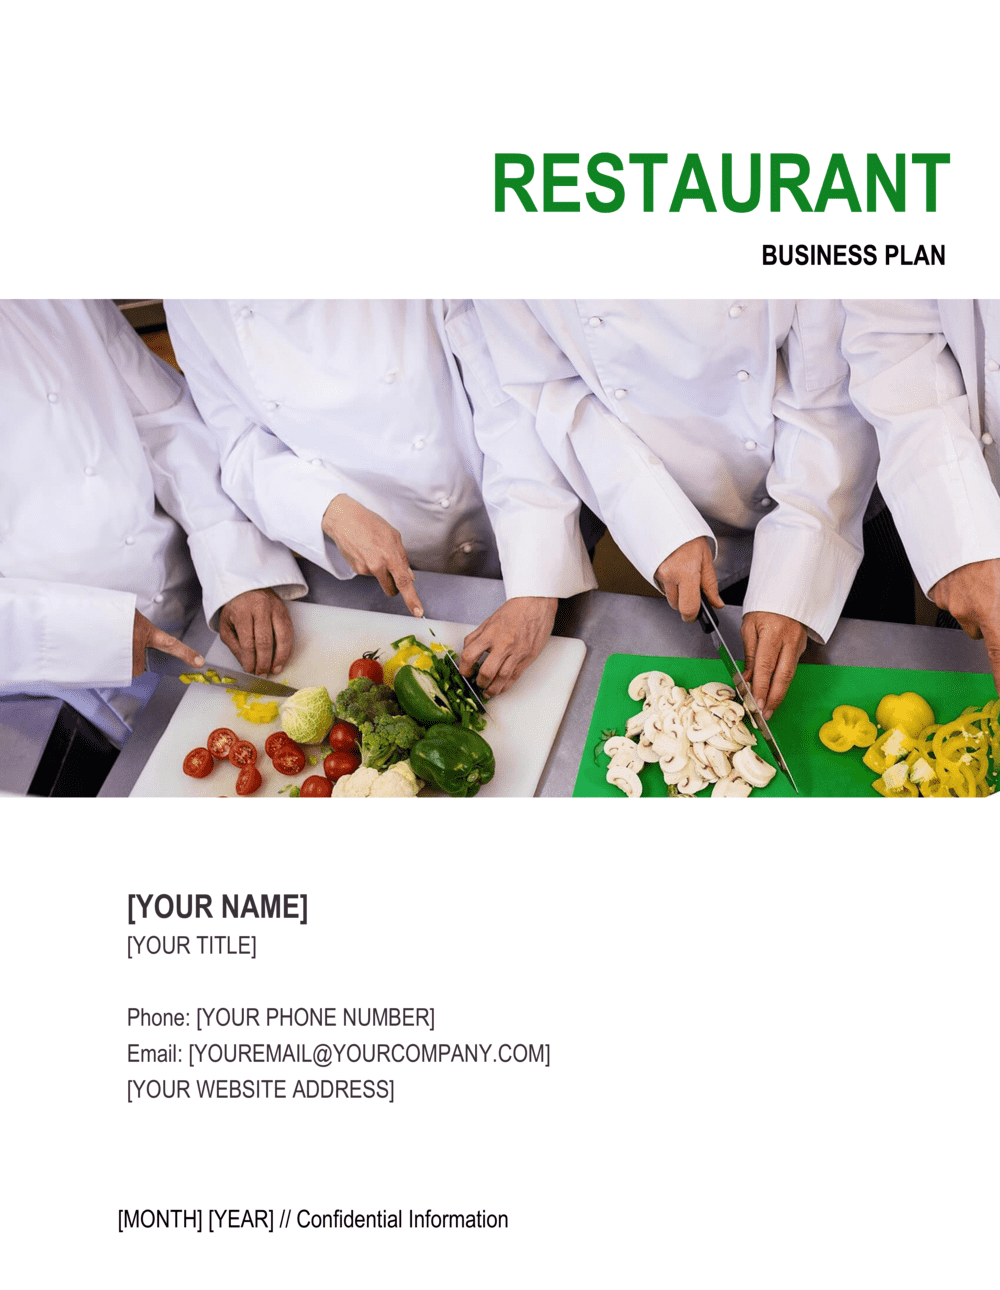 Business-in-a-Box's Restaurant Business Plan 4 Template